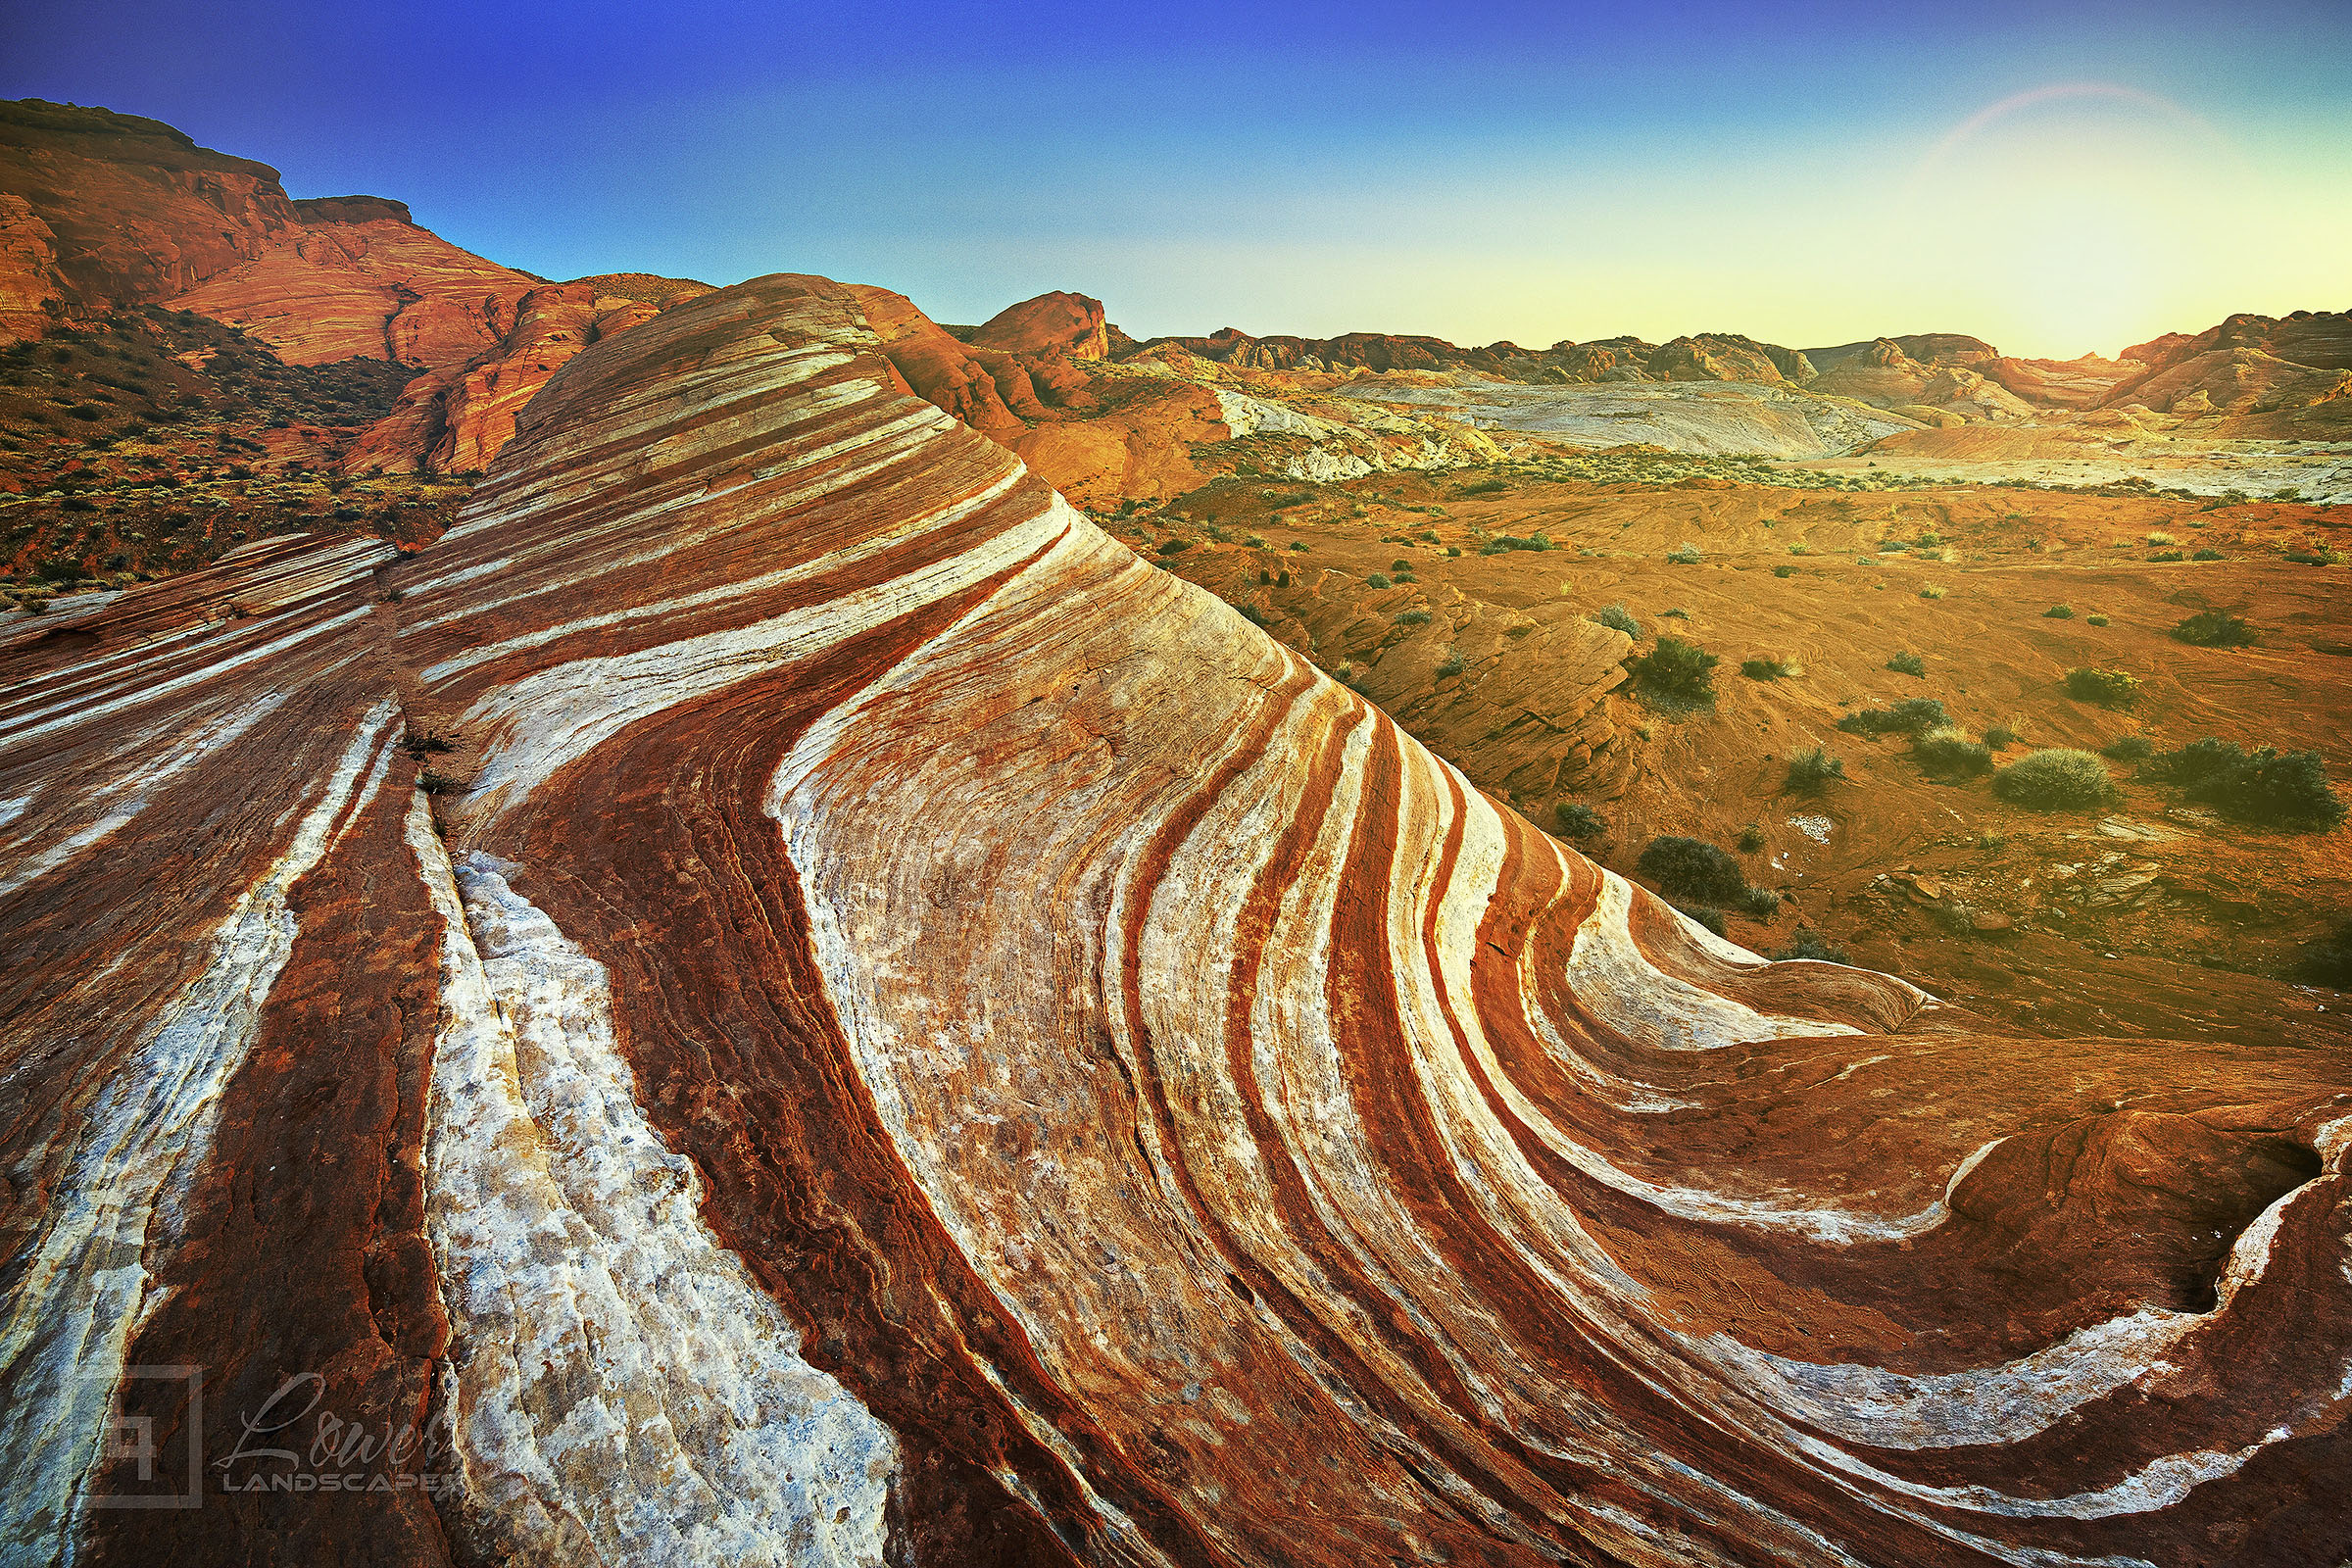 Massive waves of vividly designed sandstone in the Nevada desert simmer in the heat of the setting summer sun.